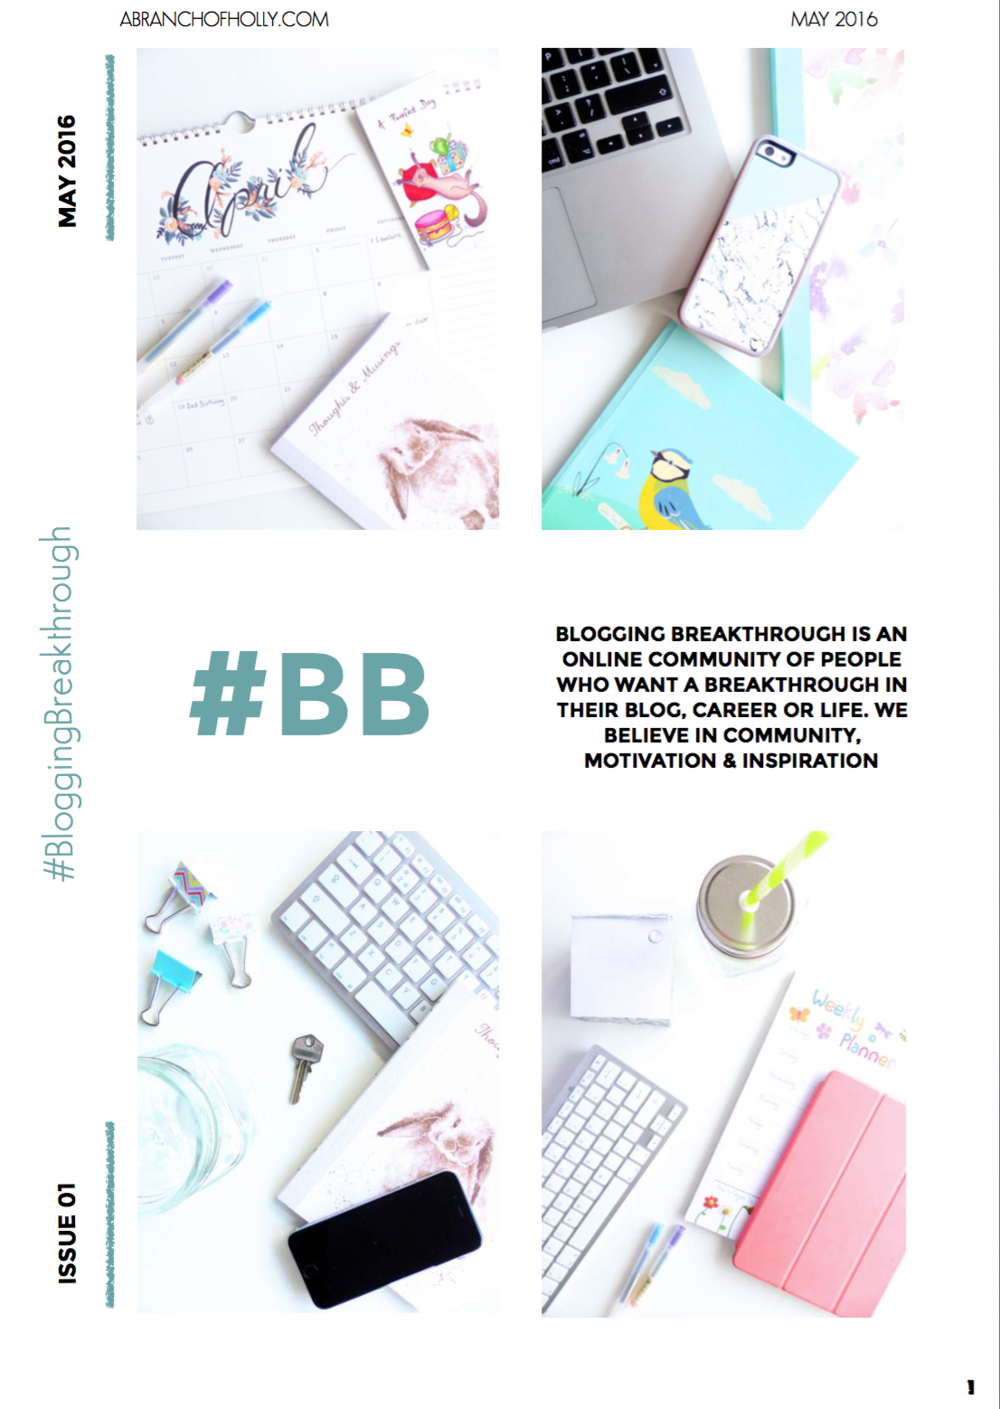 blogging breakthrough may 2016 issue 01